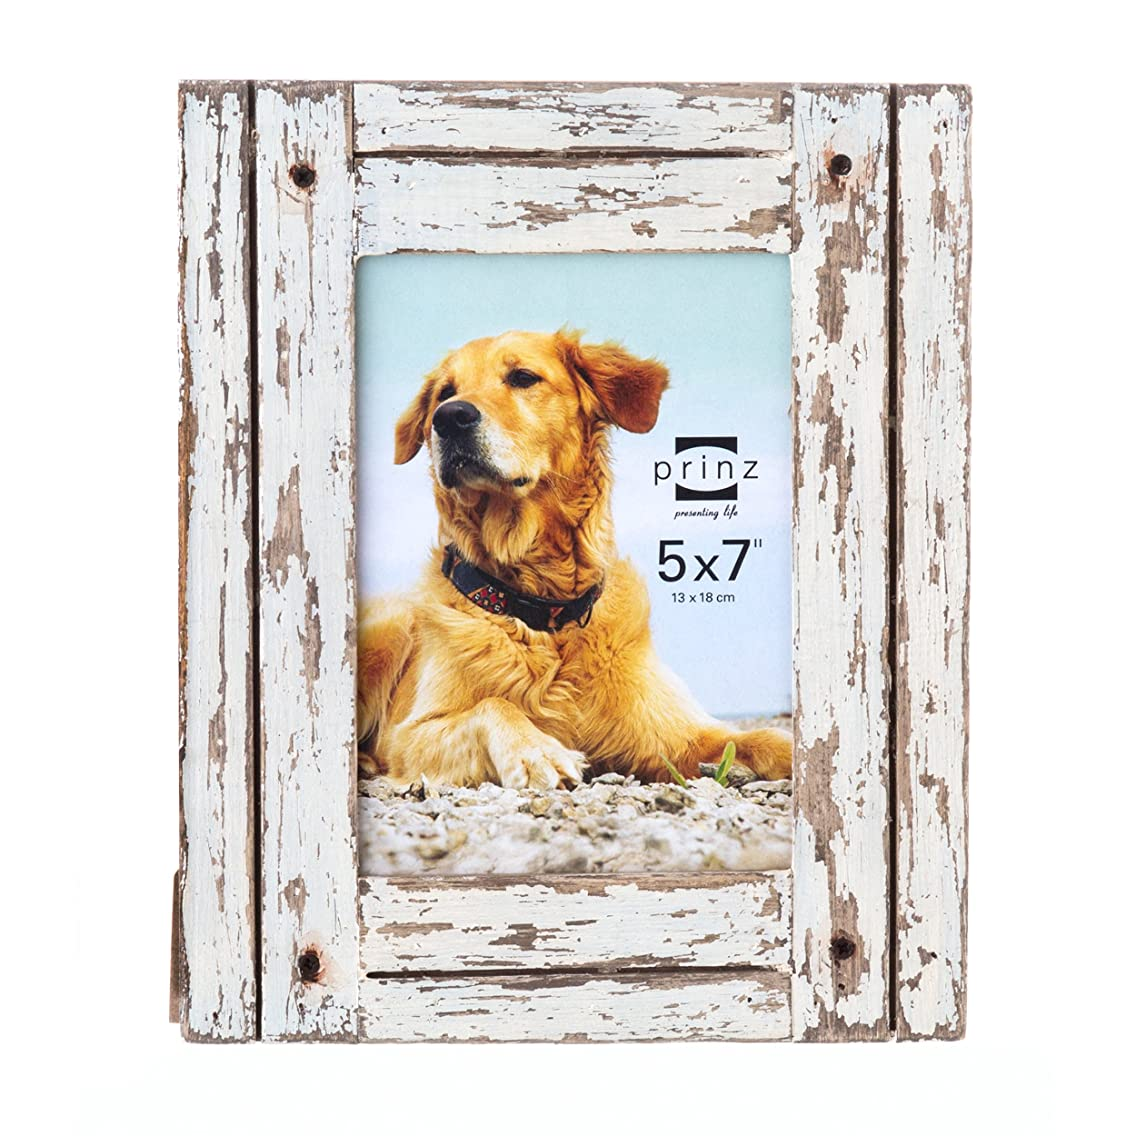 PRINZ 3710-0157 Picture Frame, 5 x 7, Distressed White